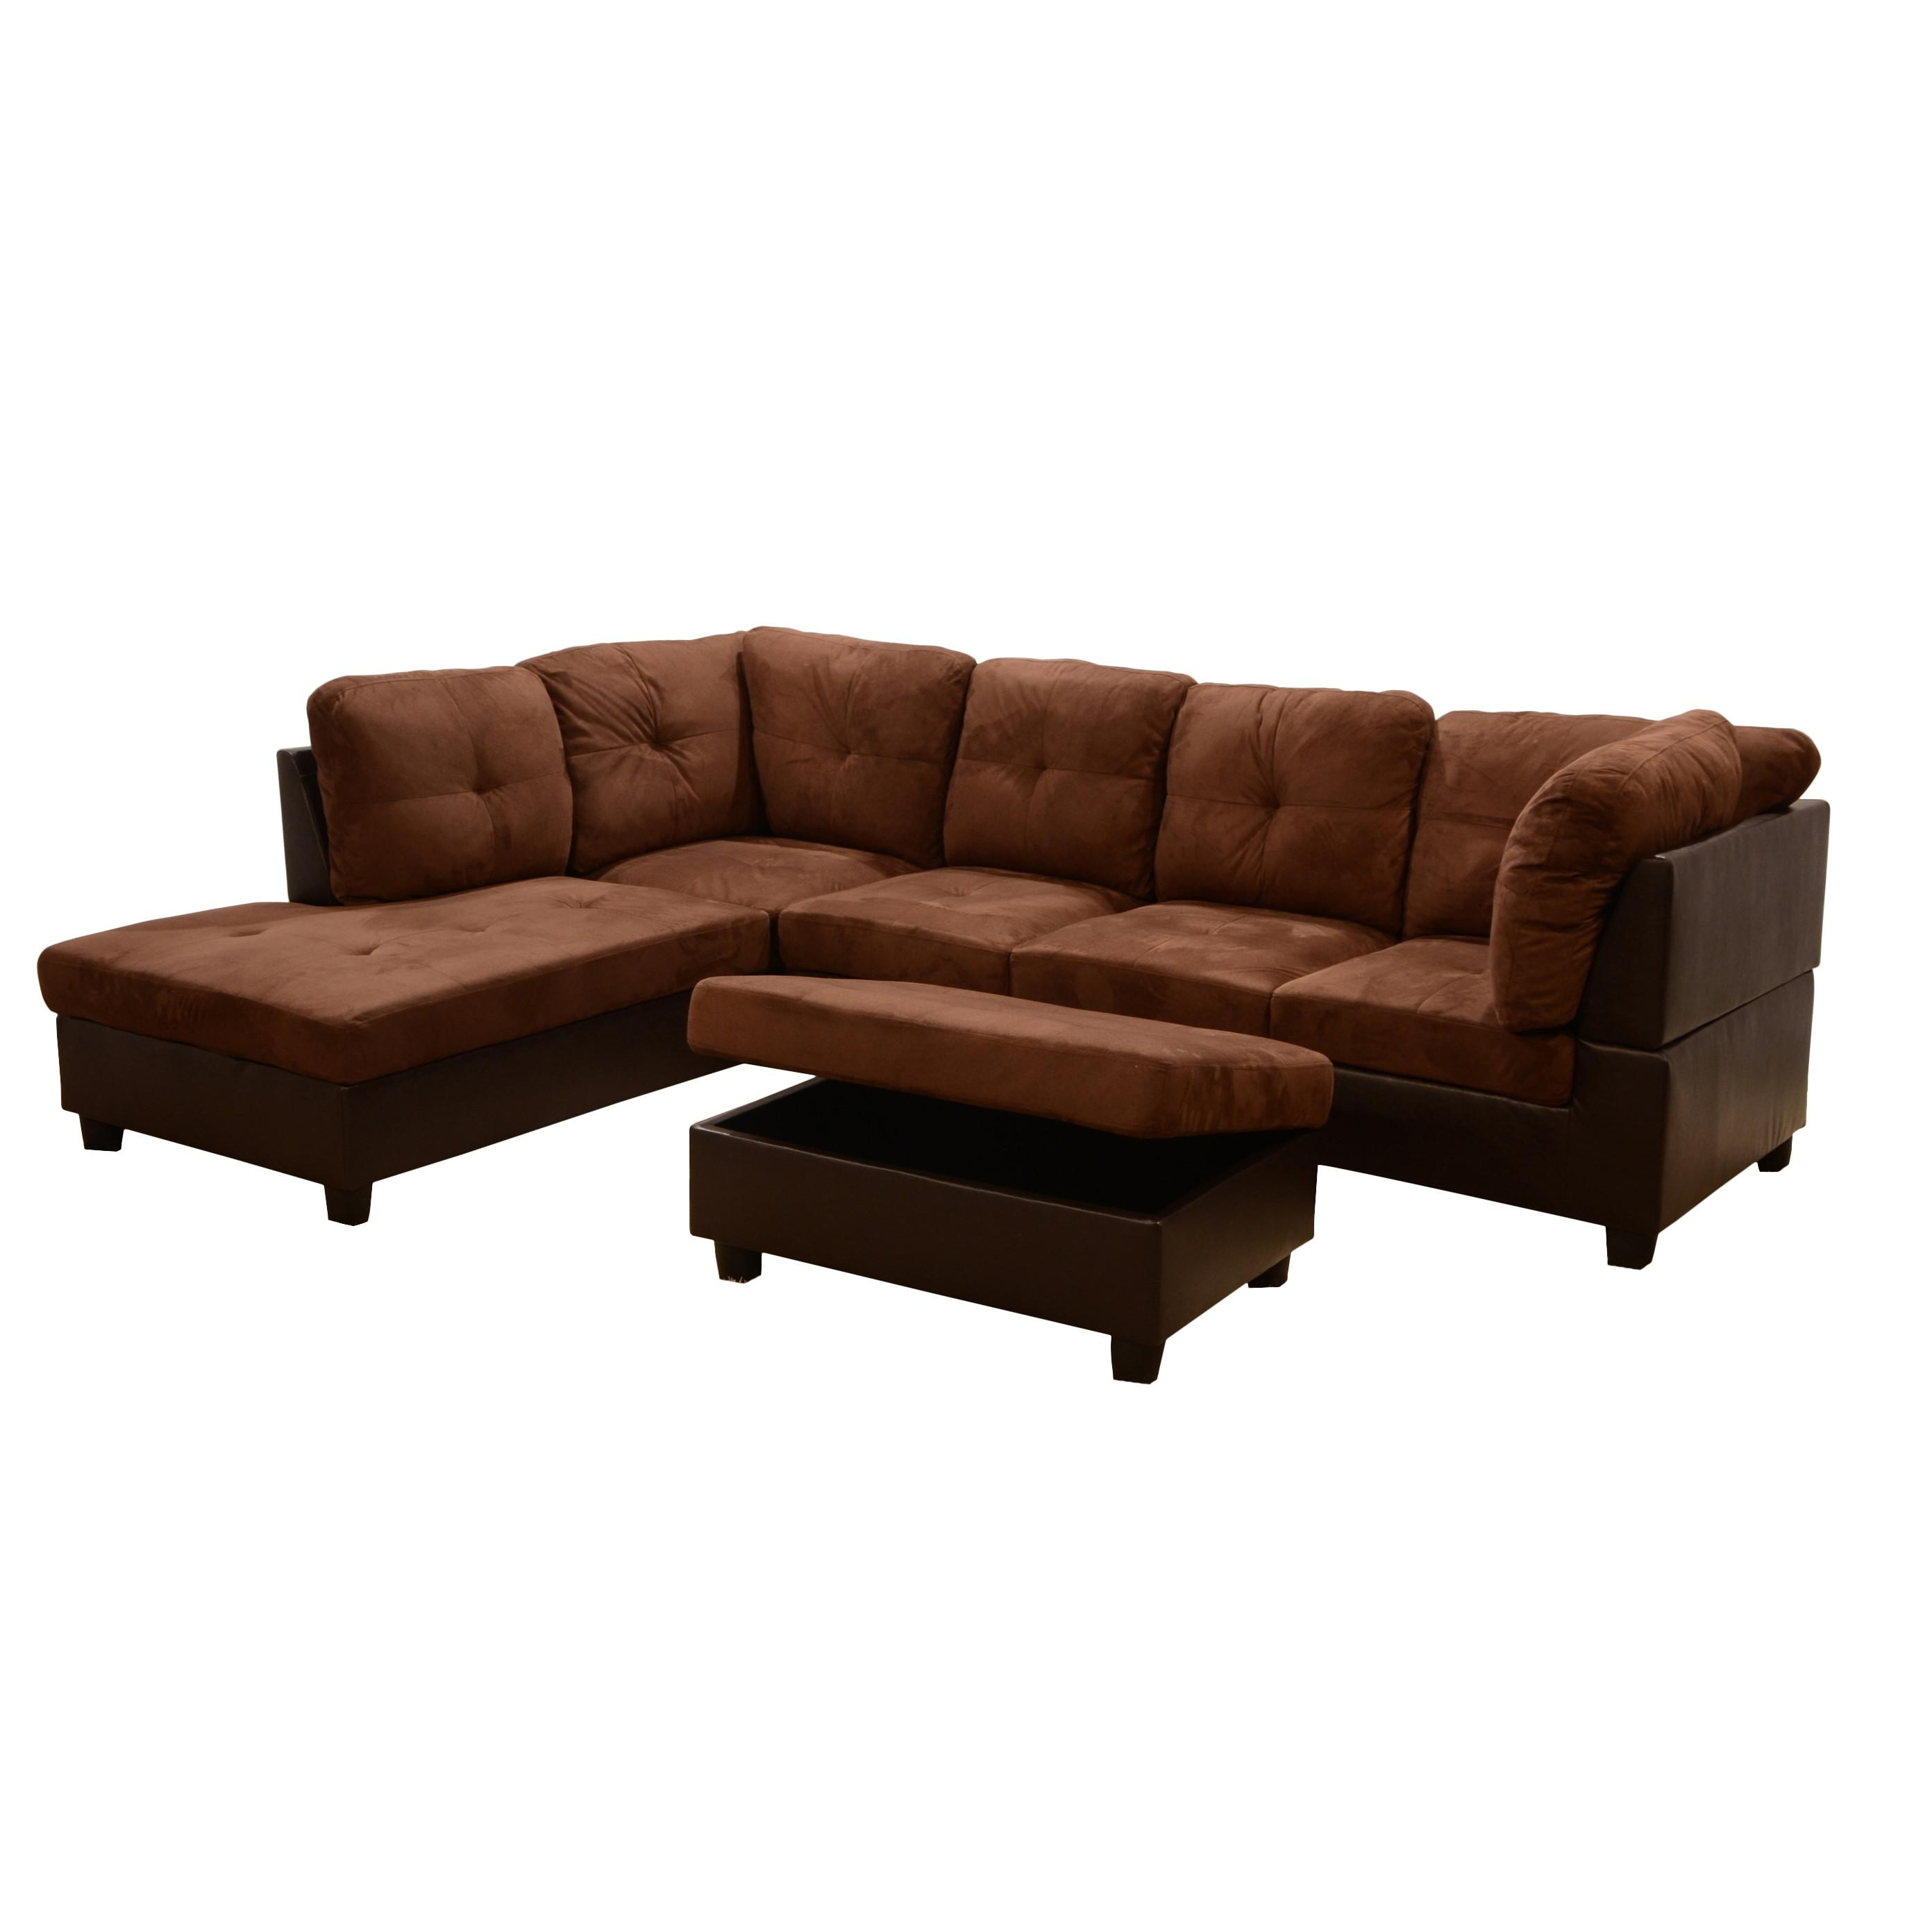 Furniture: Della Left Sectional Sofa With Storage Ottoman In Brown Throughout Sectional Sofa With Storage (View 16 of 20)